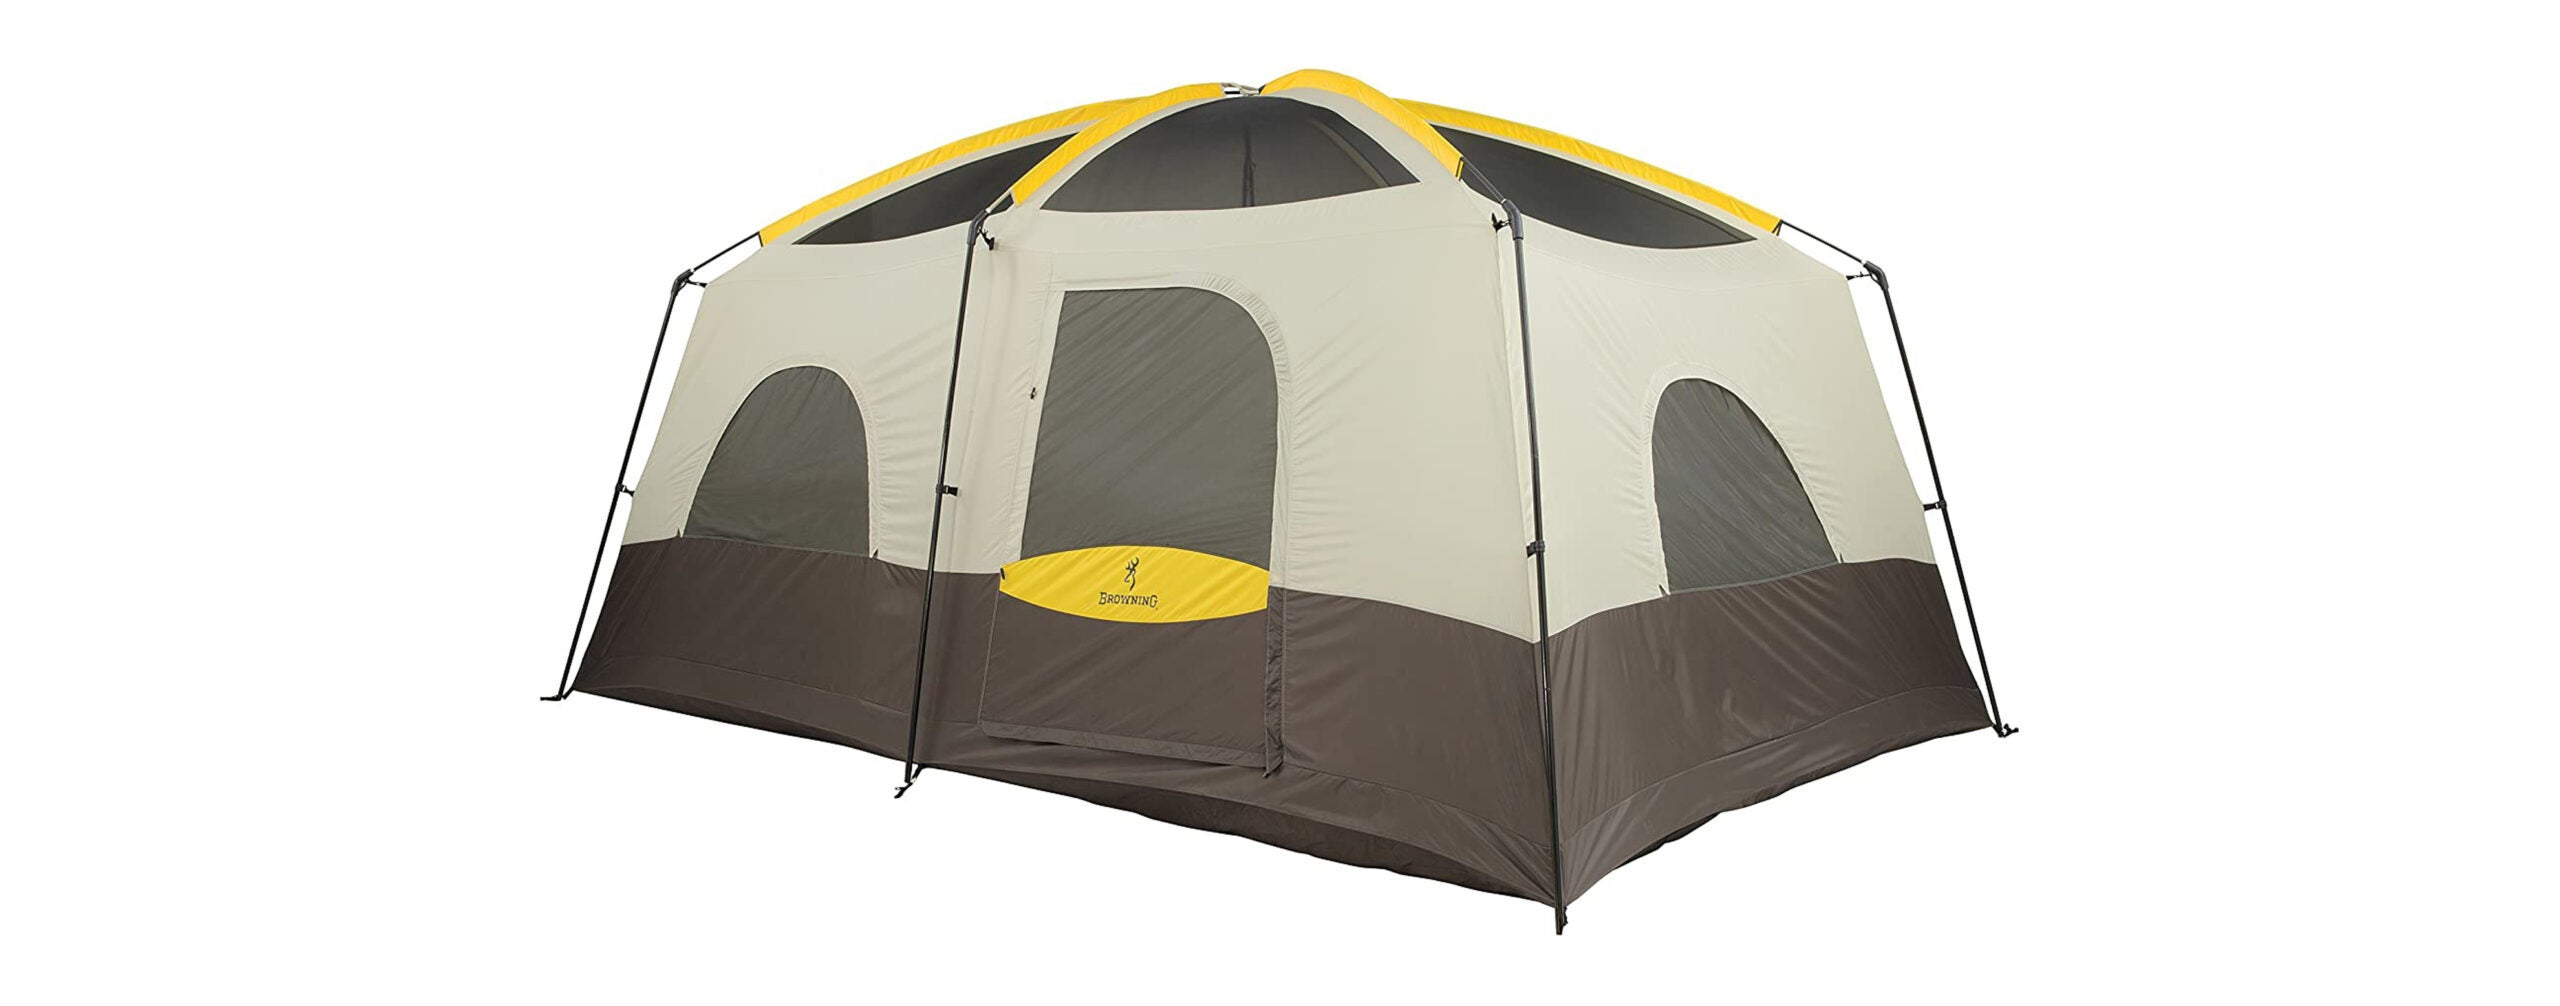 The Best Waterproof Tents (Review & Buying Guide) in 2021